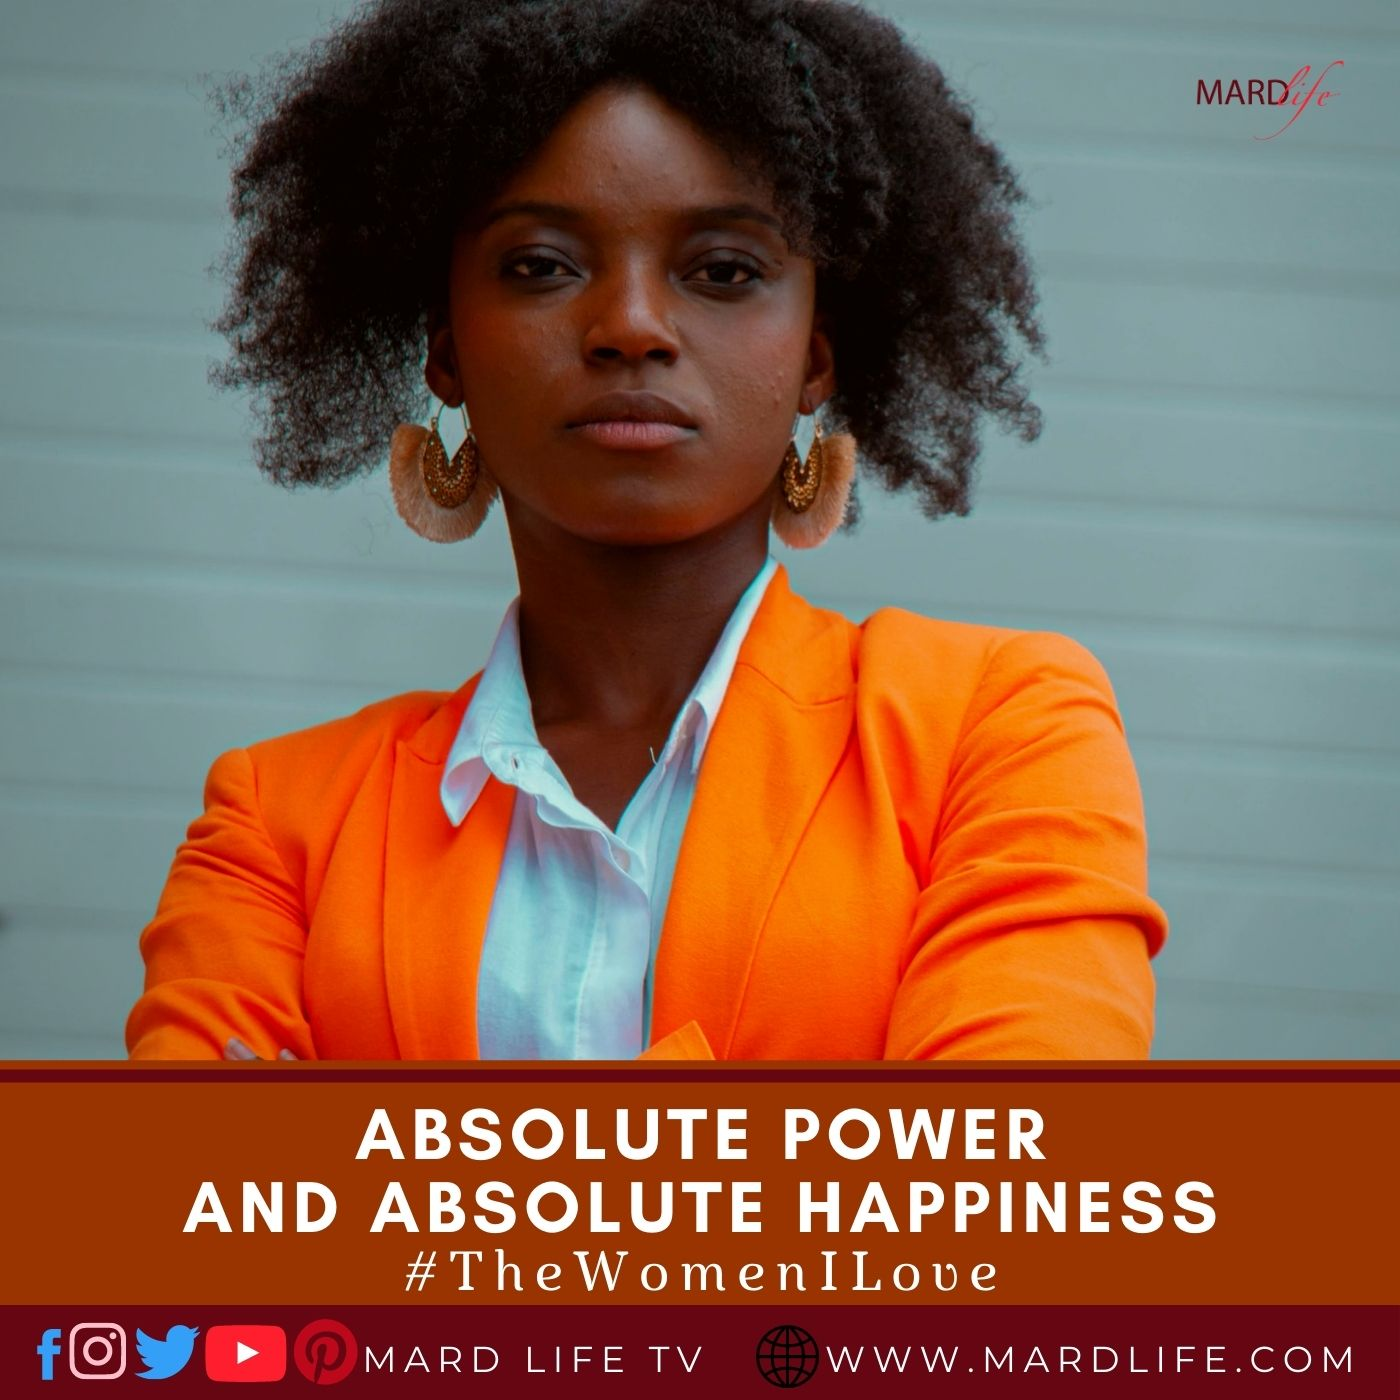 Absolute Power, Happiness, Fiction, Short Story, Series, Secondary School, Childhood, Nemesis, Competition,